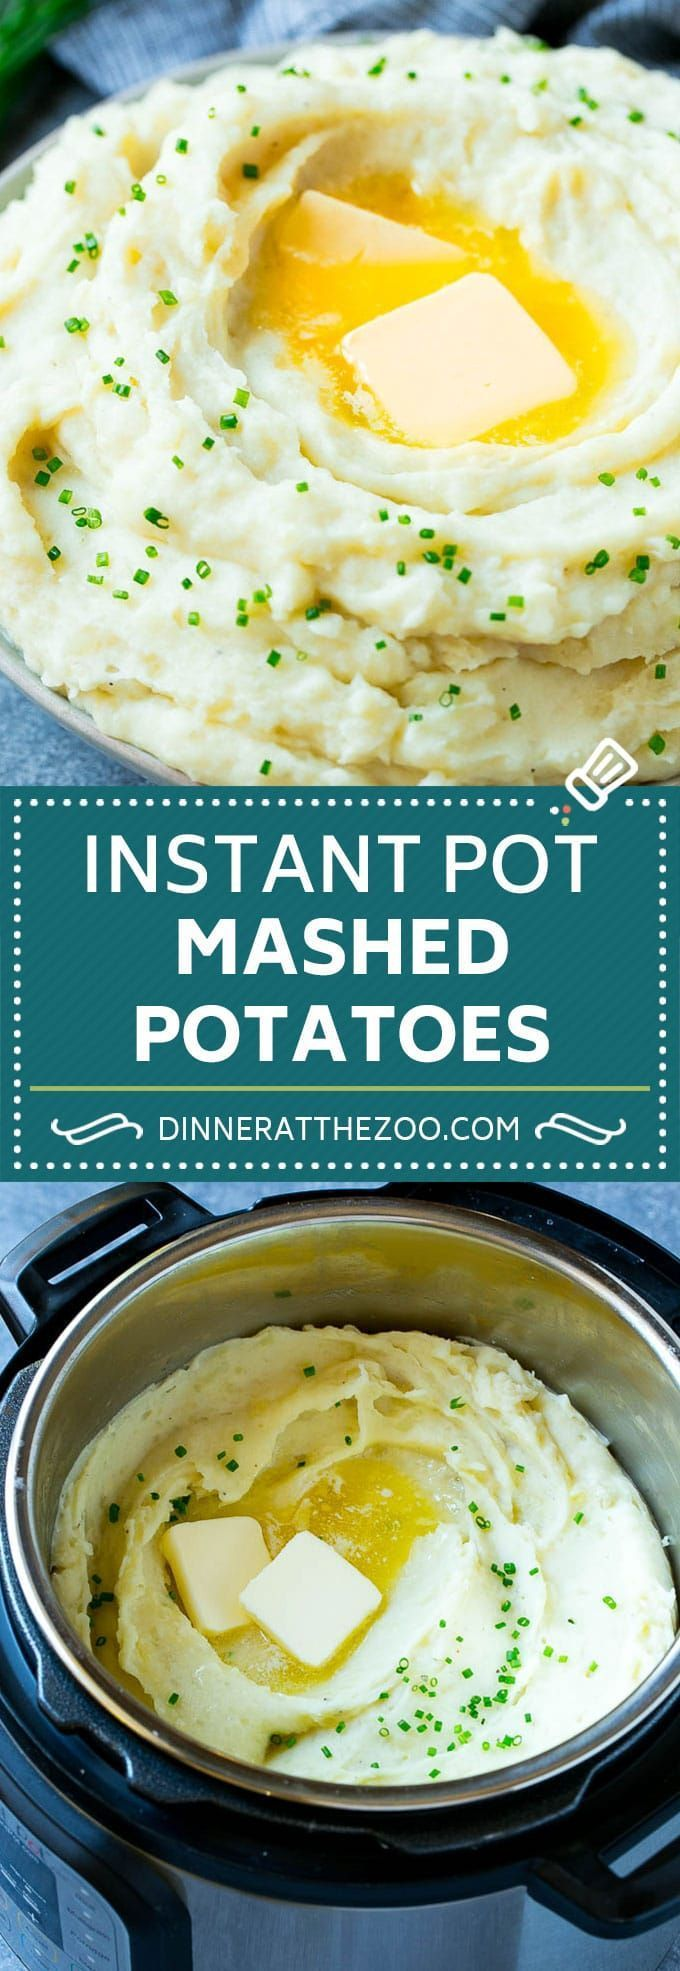 Instant Pot Mashed Potatoes Recipe | Pressure Cooker Mashed Potatoes | Easy Mash... #mashedpotatoesrecipe